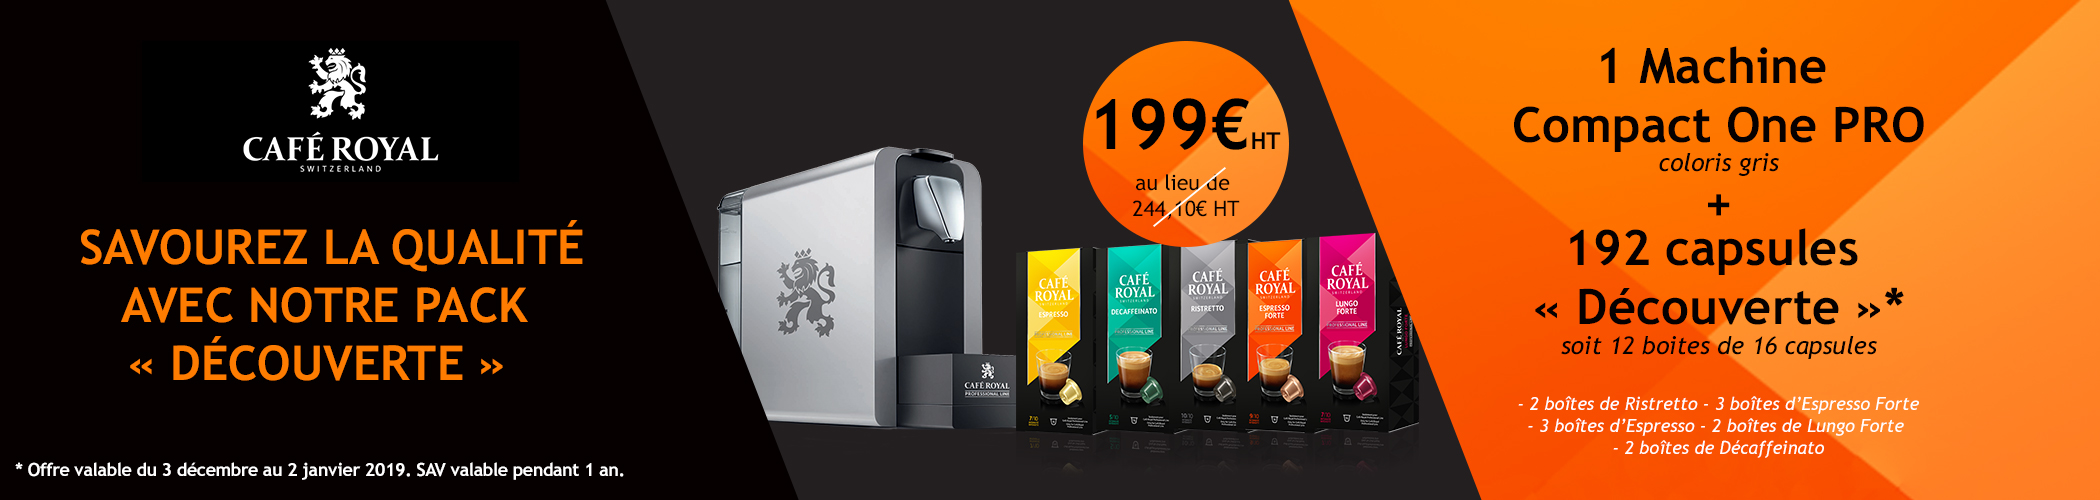 banniere homepage offre cafe royal